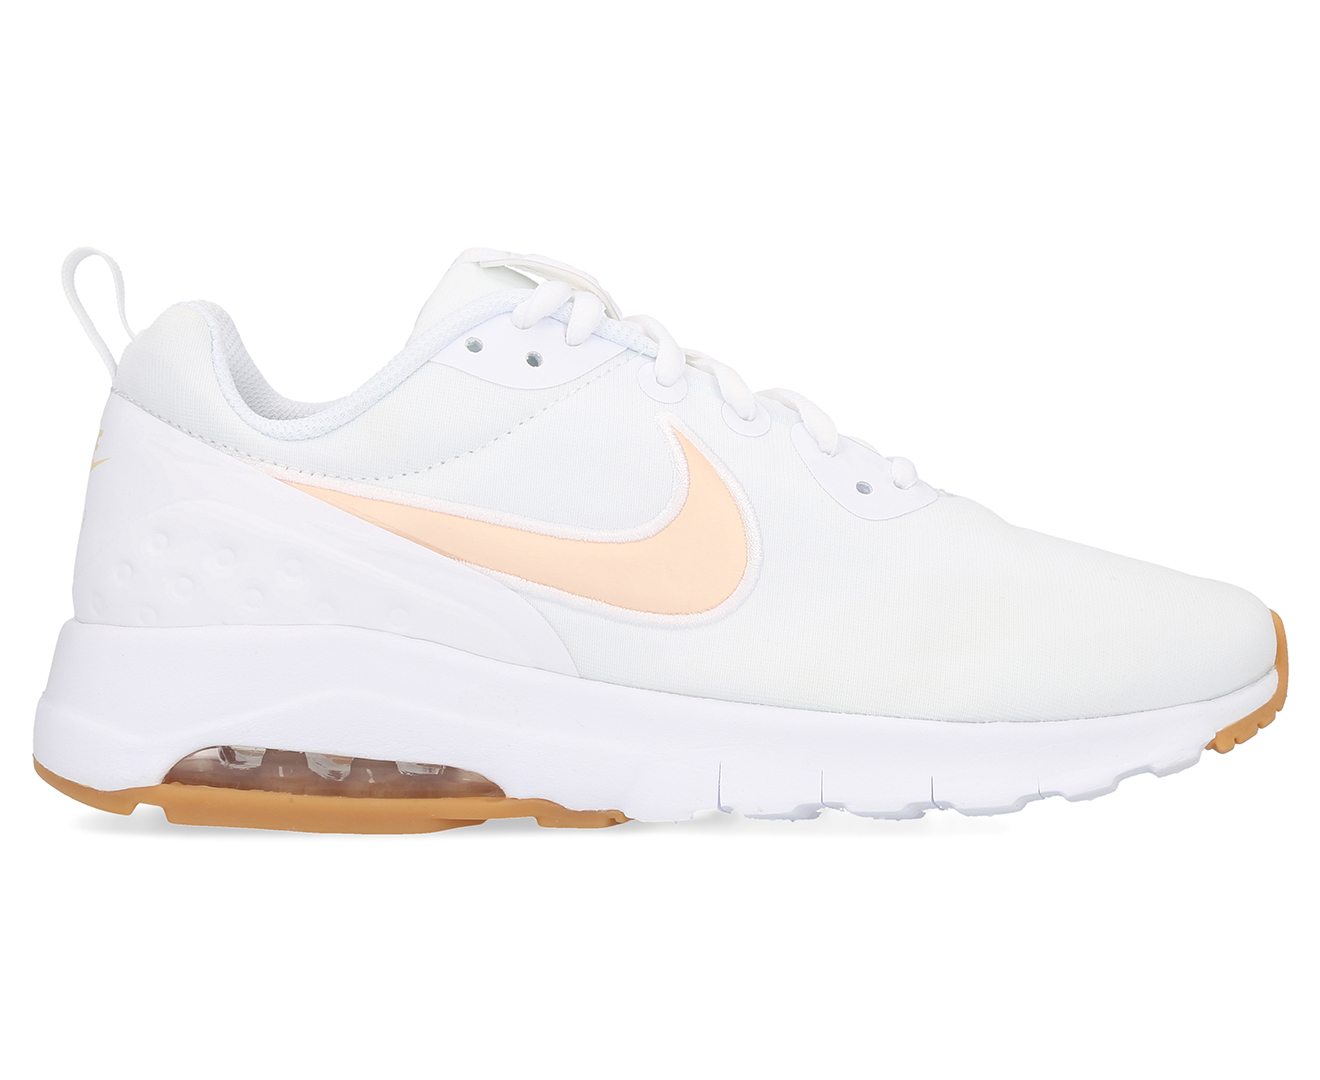 Details about Nike Women's Air Max Motion LW SE Shoe WhiteGuava Ice